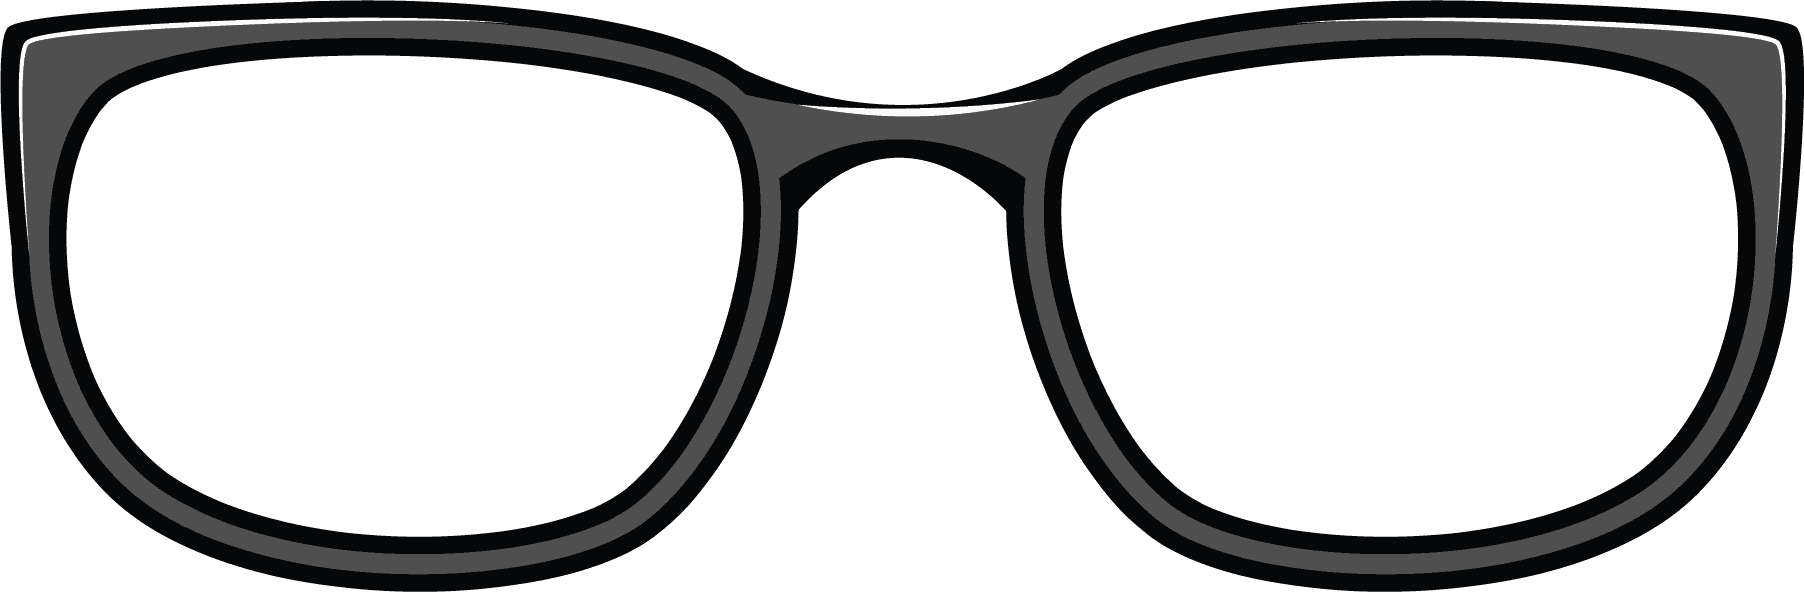 Eyeglasses clipart free download clip art on